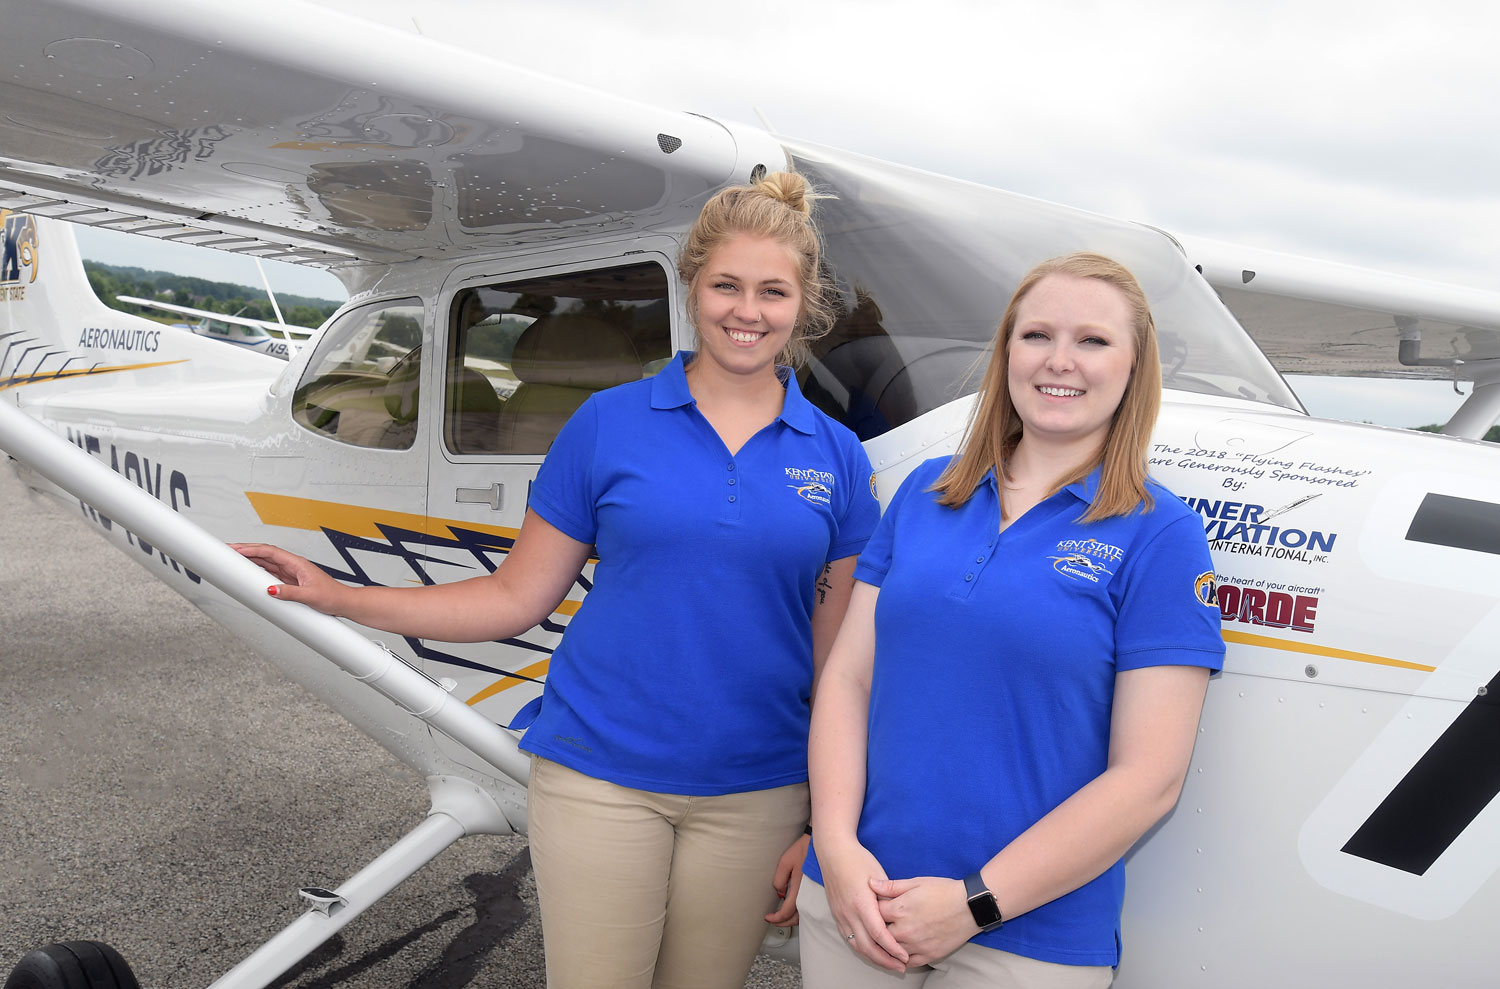 Kent State University aeronautics students Helen Miller and Kenzie Alge are soaring to the finish line in the 2018 Air Race Classic.